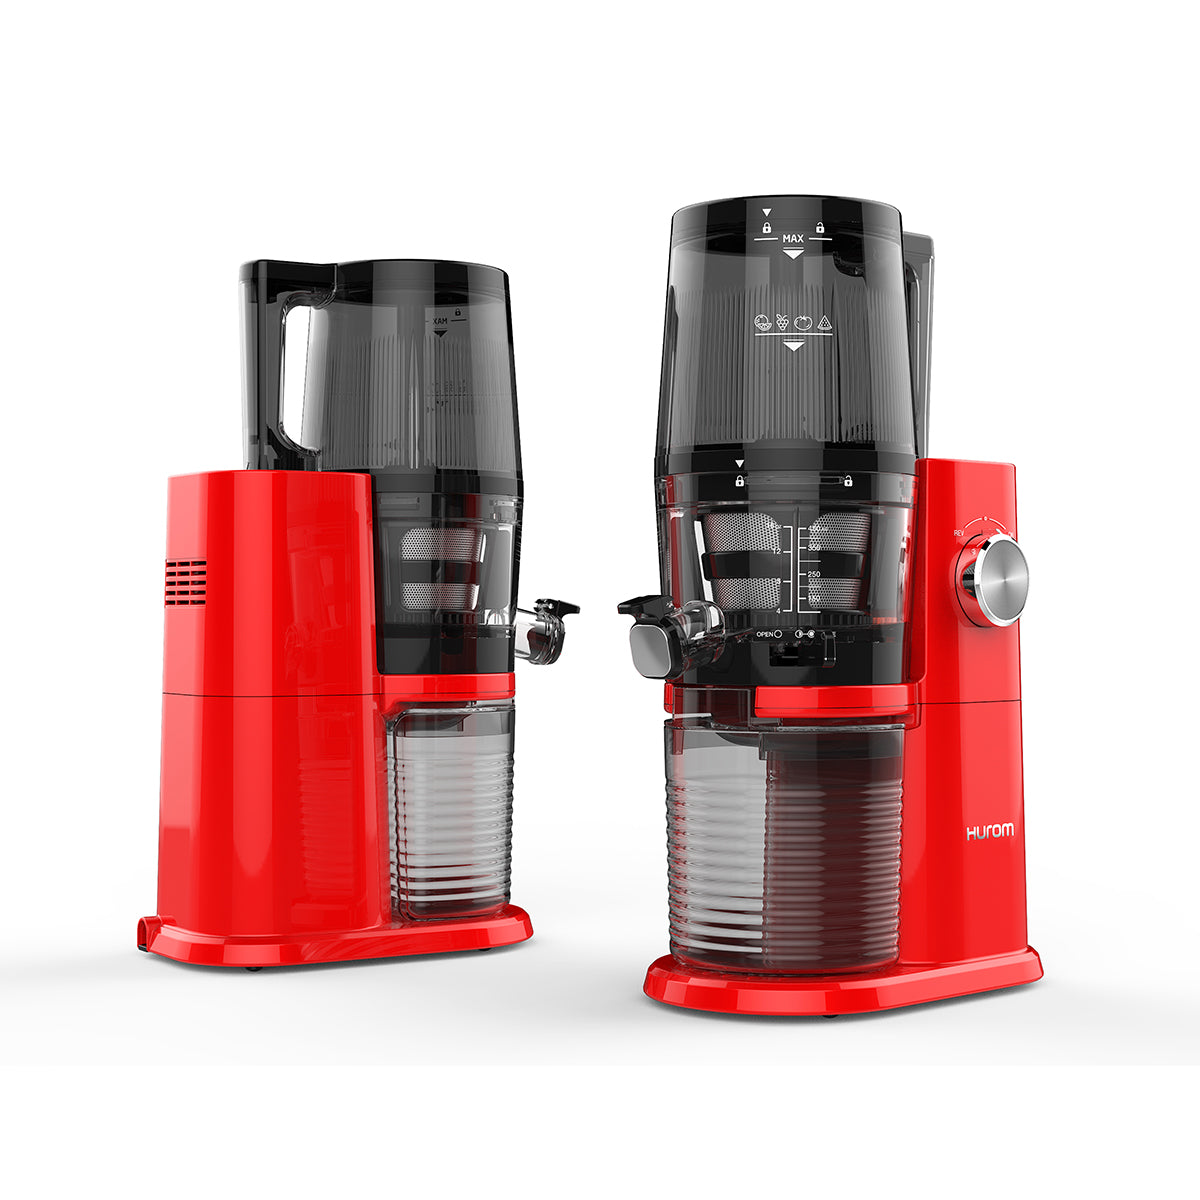 Hurom HI-3400 Premium Series Vivid Red